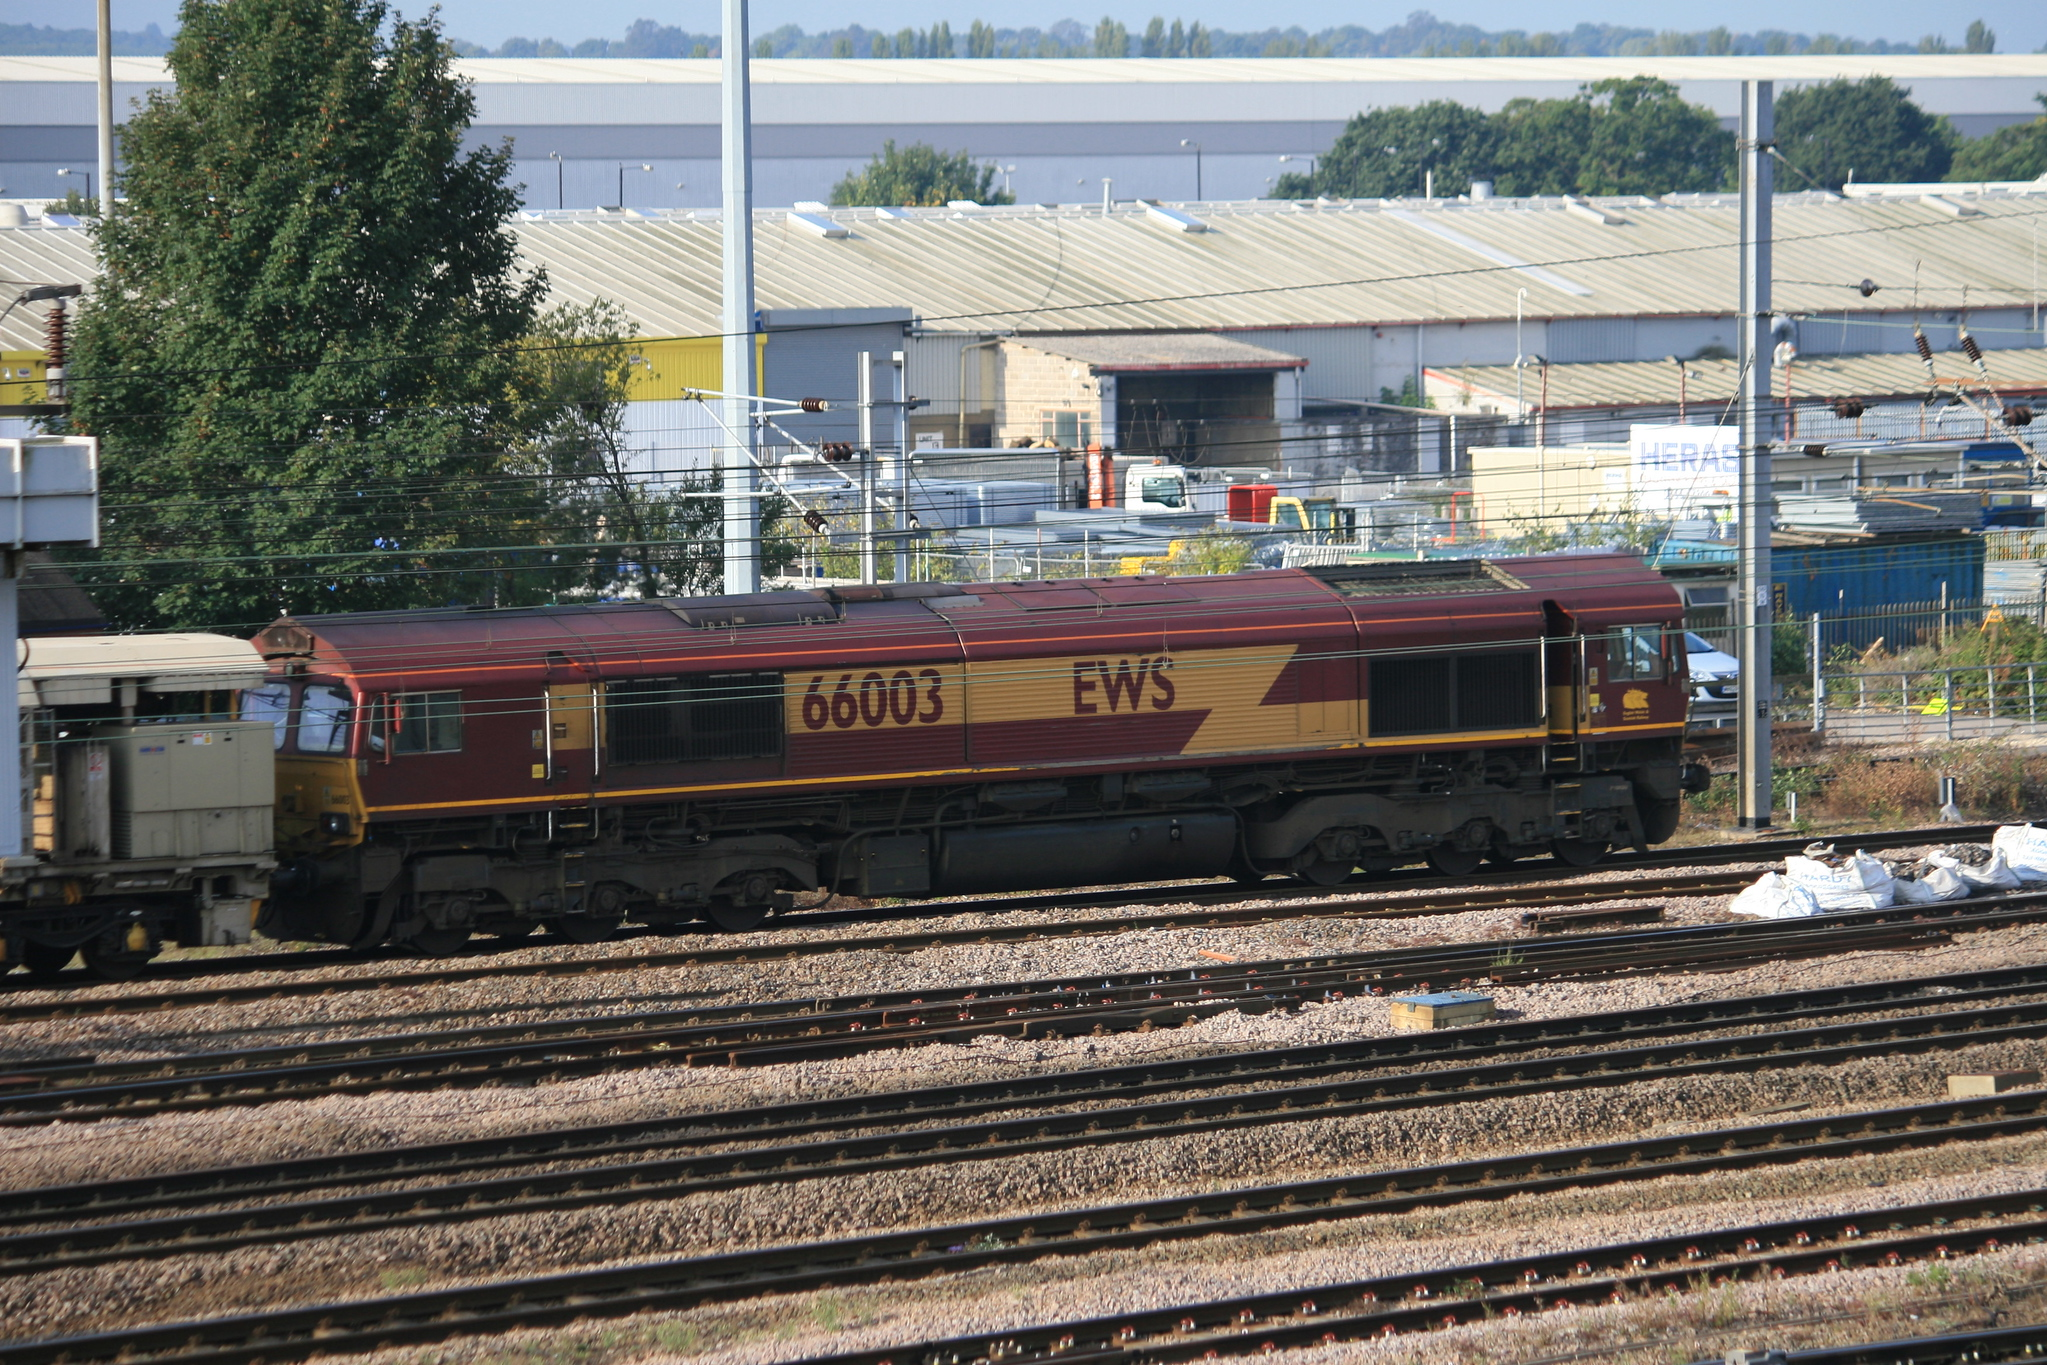 66003_Doncaster_20092015 (7)_DBS